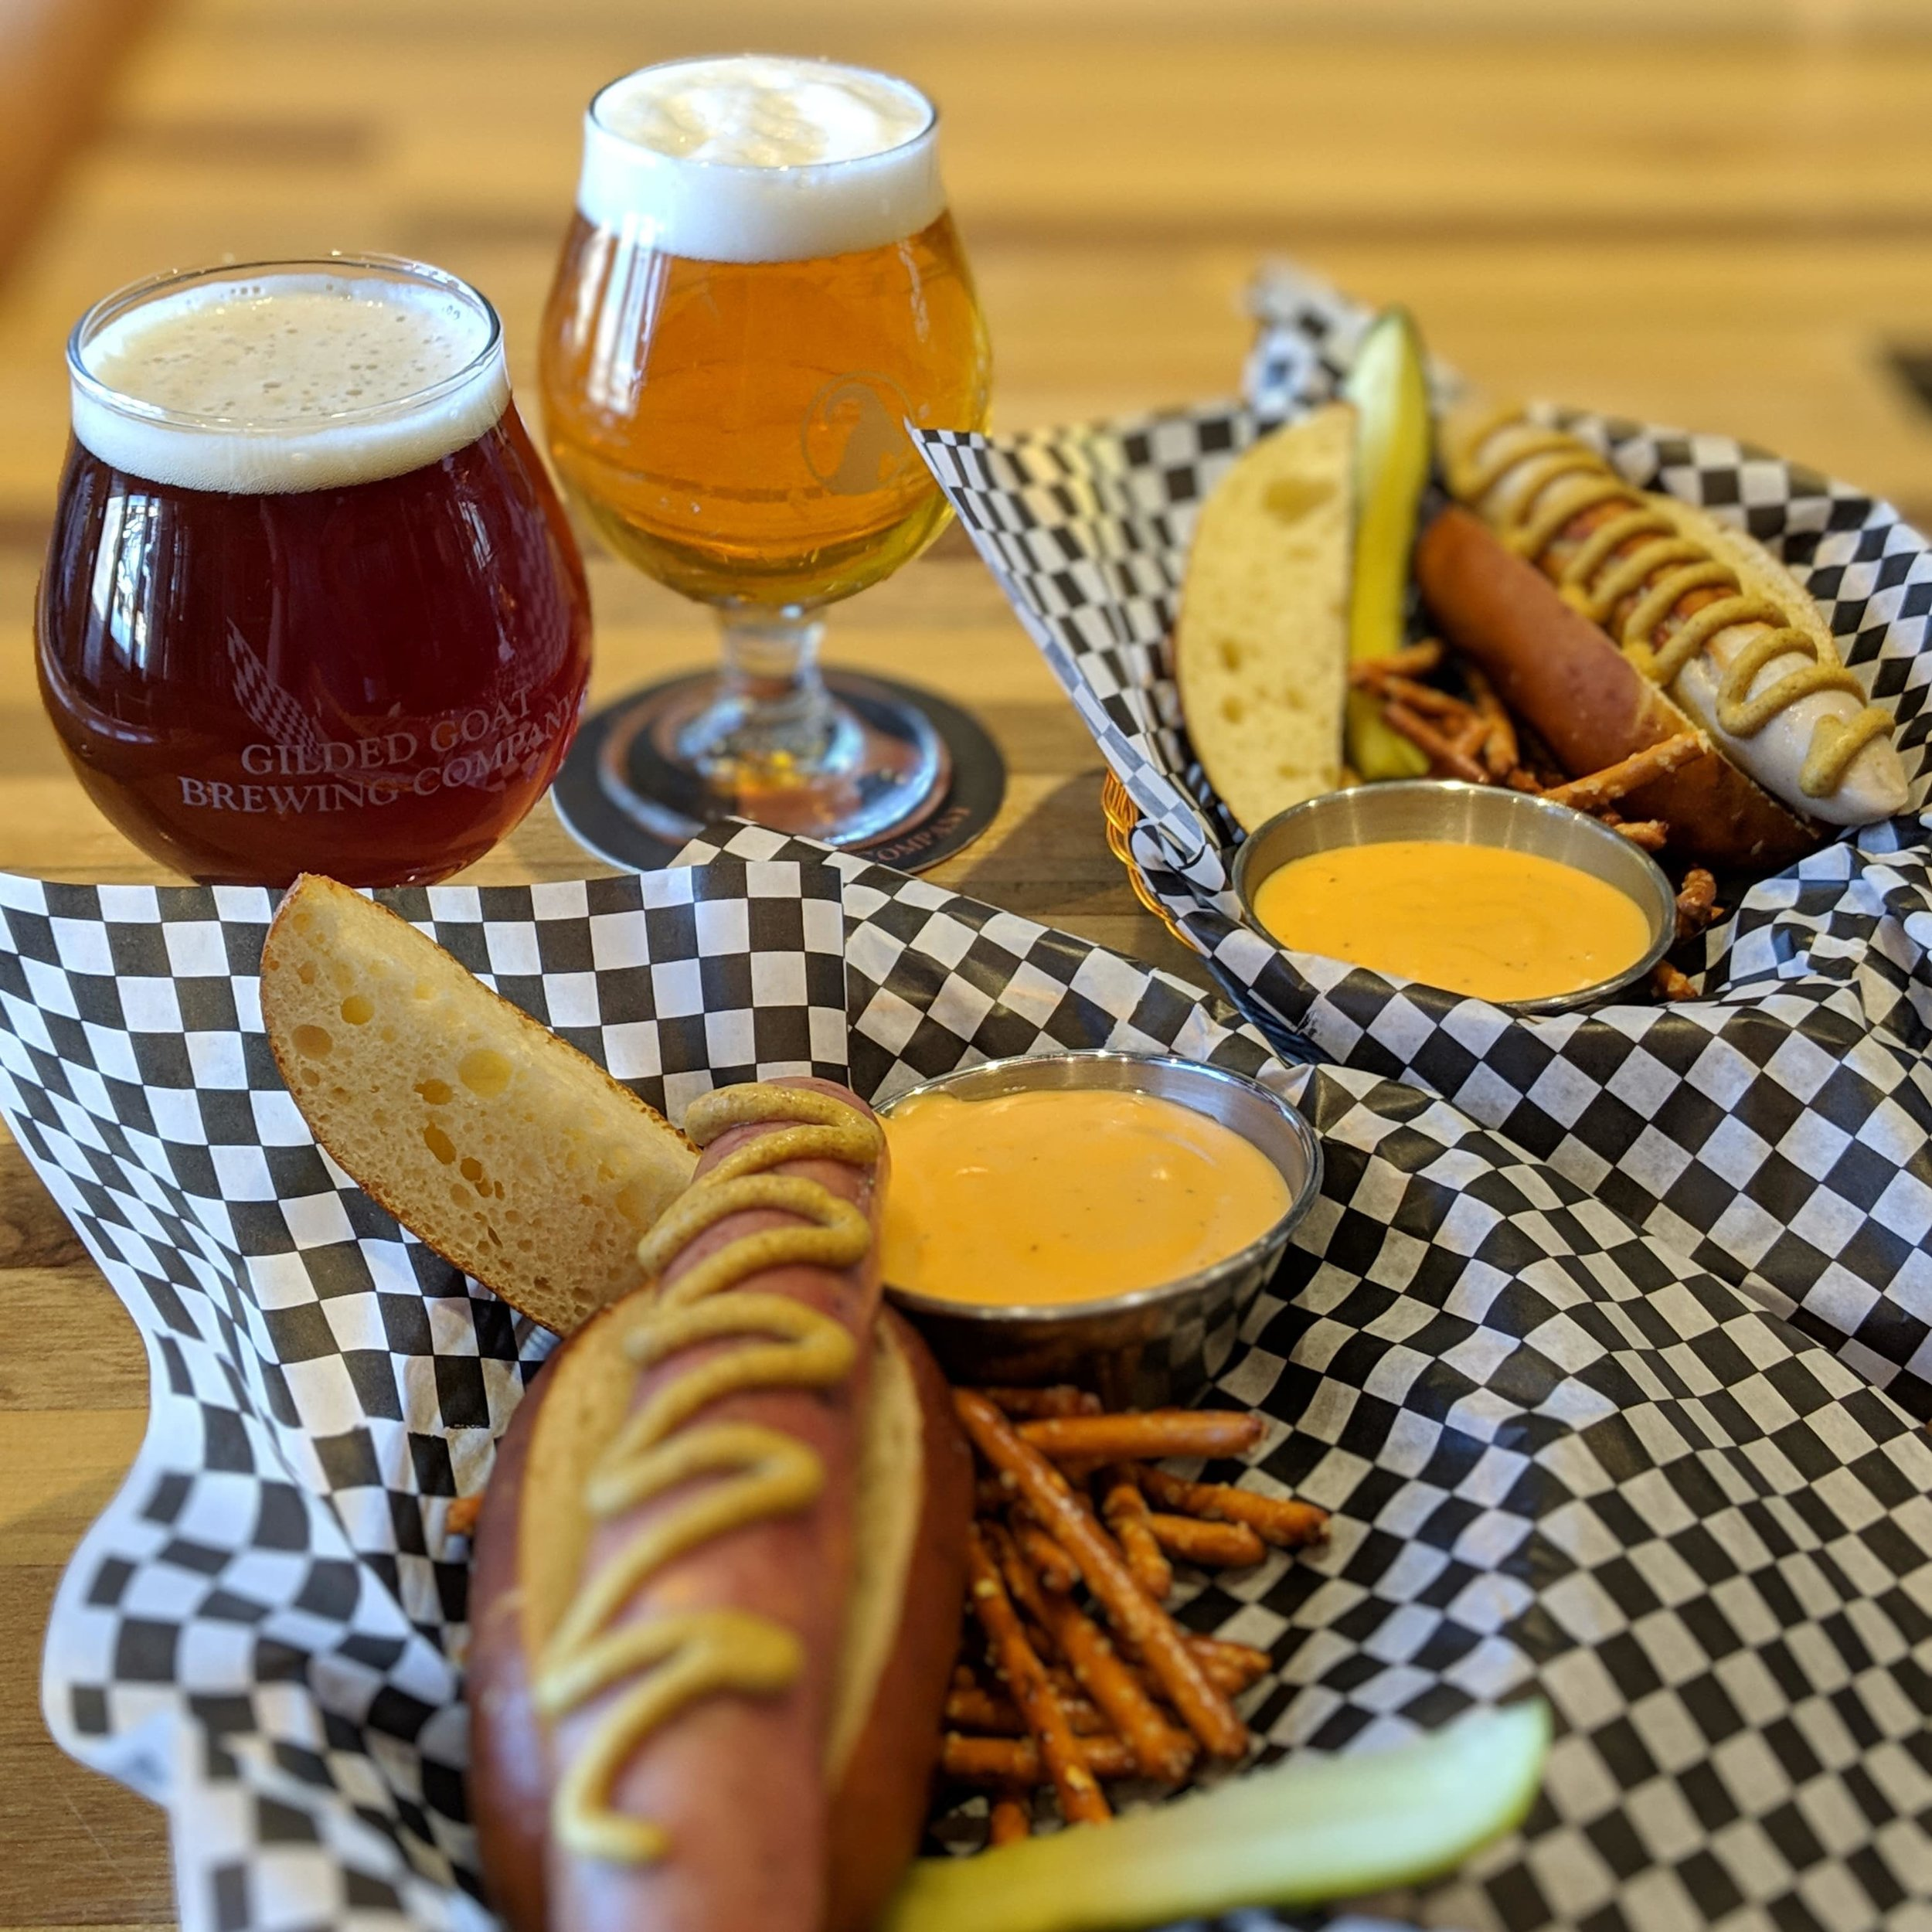 Lunch, Dinner, or snack, Gilded Goat Brewing Company has delicious food options. hot dogs, Hofmann Sausage Company. Beer Cheese. Pretzels. Craft beer. Snappy White, German Frank.